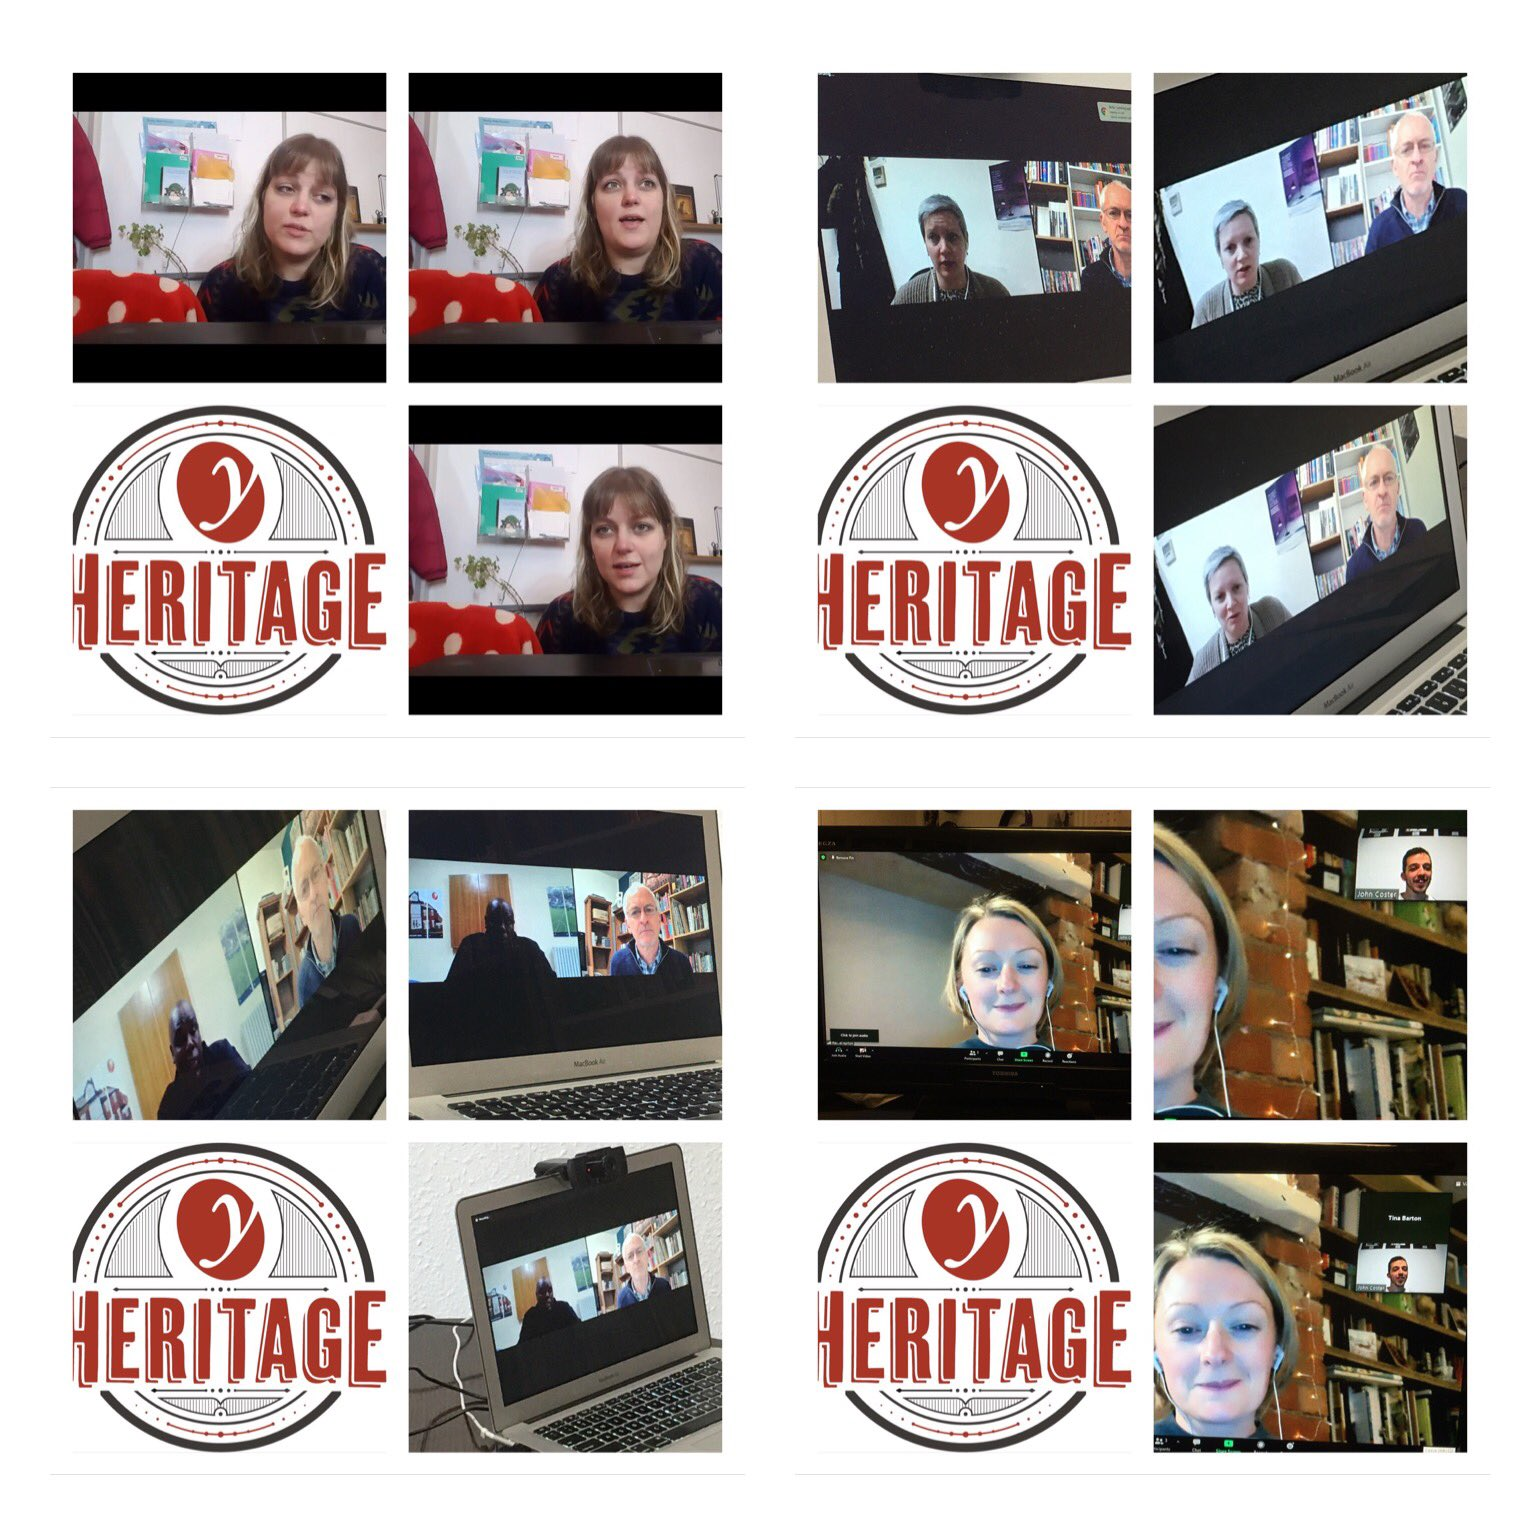 A massive thanks to everyone who participated and supported our #WOTBoxHeritage #Newsroom yesterday.... @LeicsCares @KRIIICentre @nationaltrust @HeritageFundUK @CuriousMindsNW @EnterEdem @JoannaThe_Y @AmyChrister @TheYCharity @DocMediaCentre  @Heritage #YPEngagement #DocEd https://t.co/bnnX3cCVUt